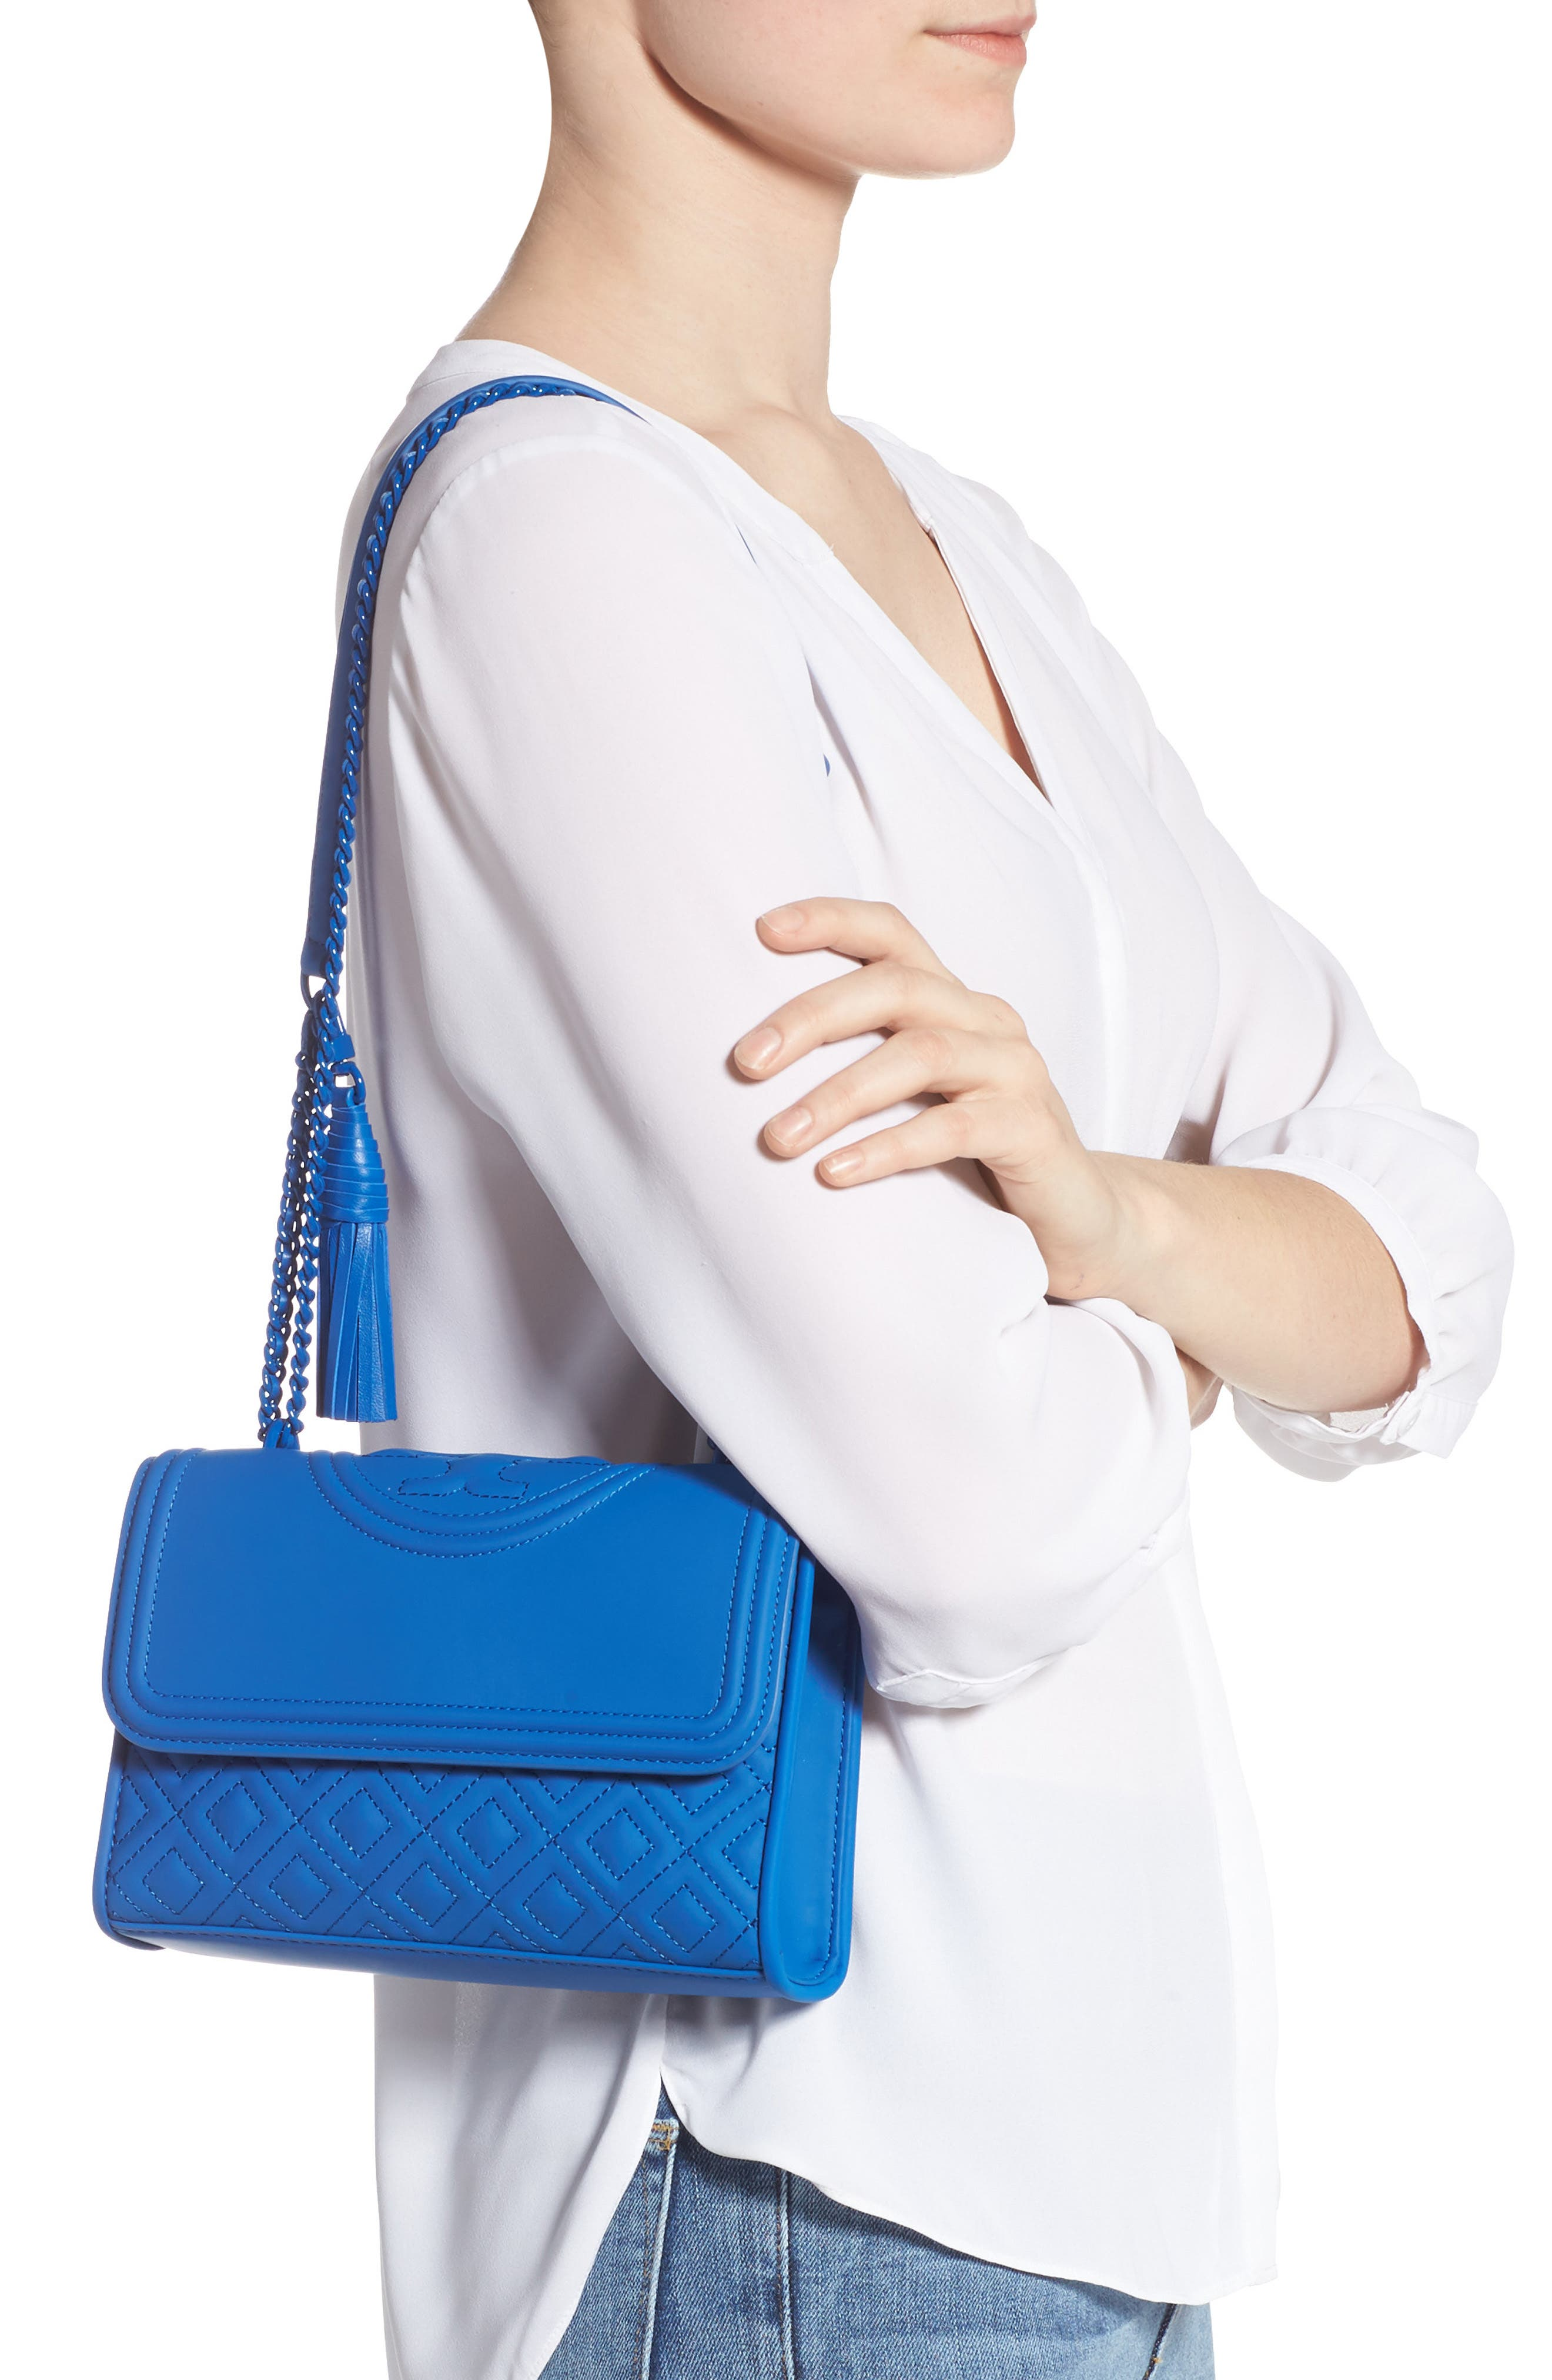 TORY BURCH, Small Fleming Matte Quilted Shoulder Bag, Alternate thumbnail 2, color, MEDITERRANEAN BLUE